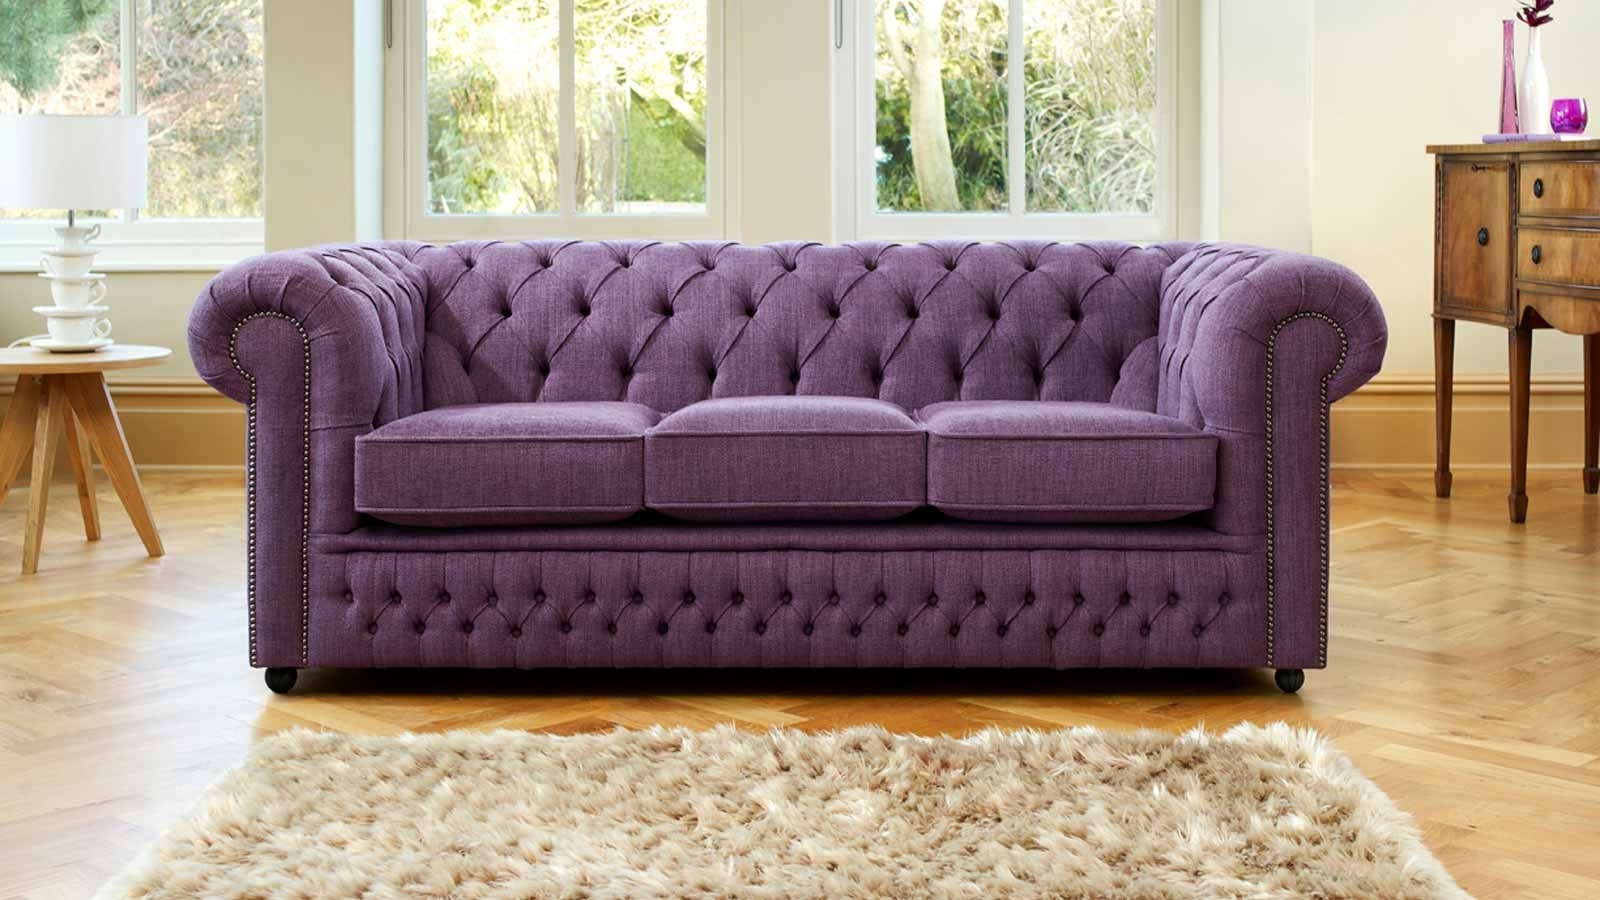 2018 Chesterfield Sofas And Chairs Intended For Furniture: Purple Fabric Chesterfield Sofa With Wooden Chest (View 1 of 20)